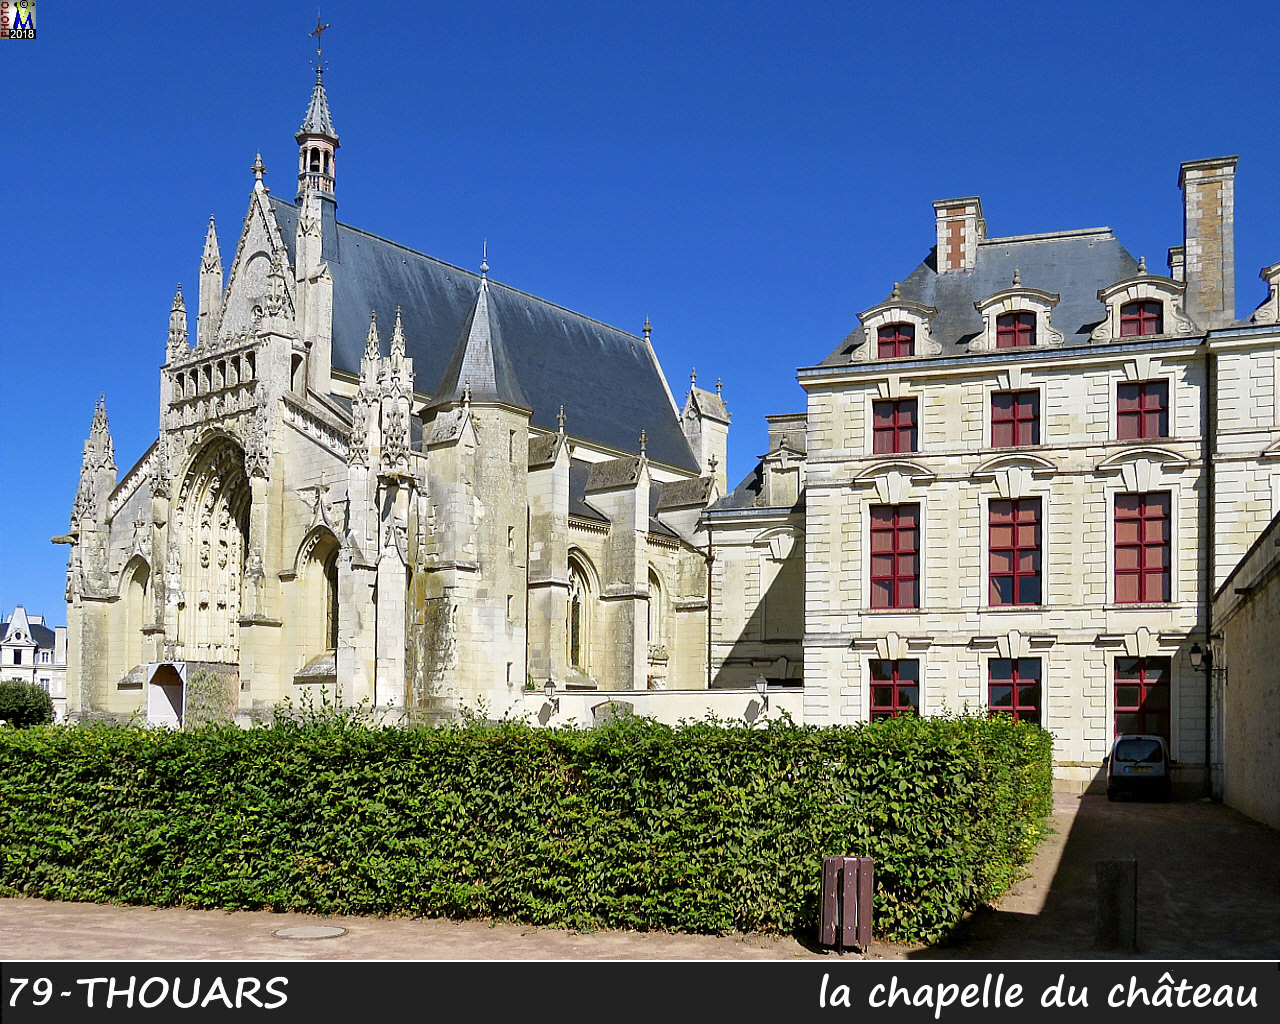 79THOUARS_chateau_1200.jpg